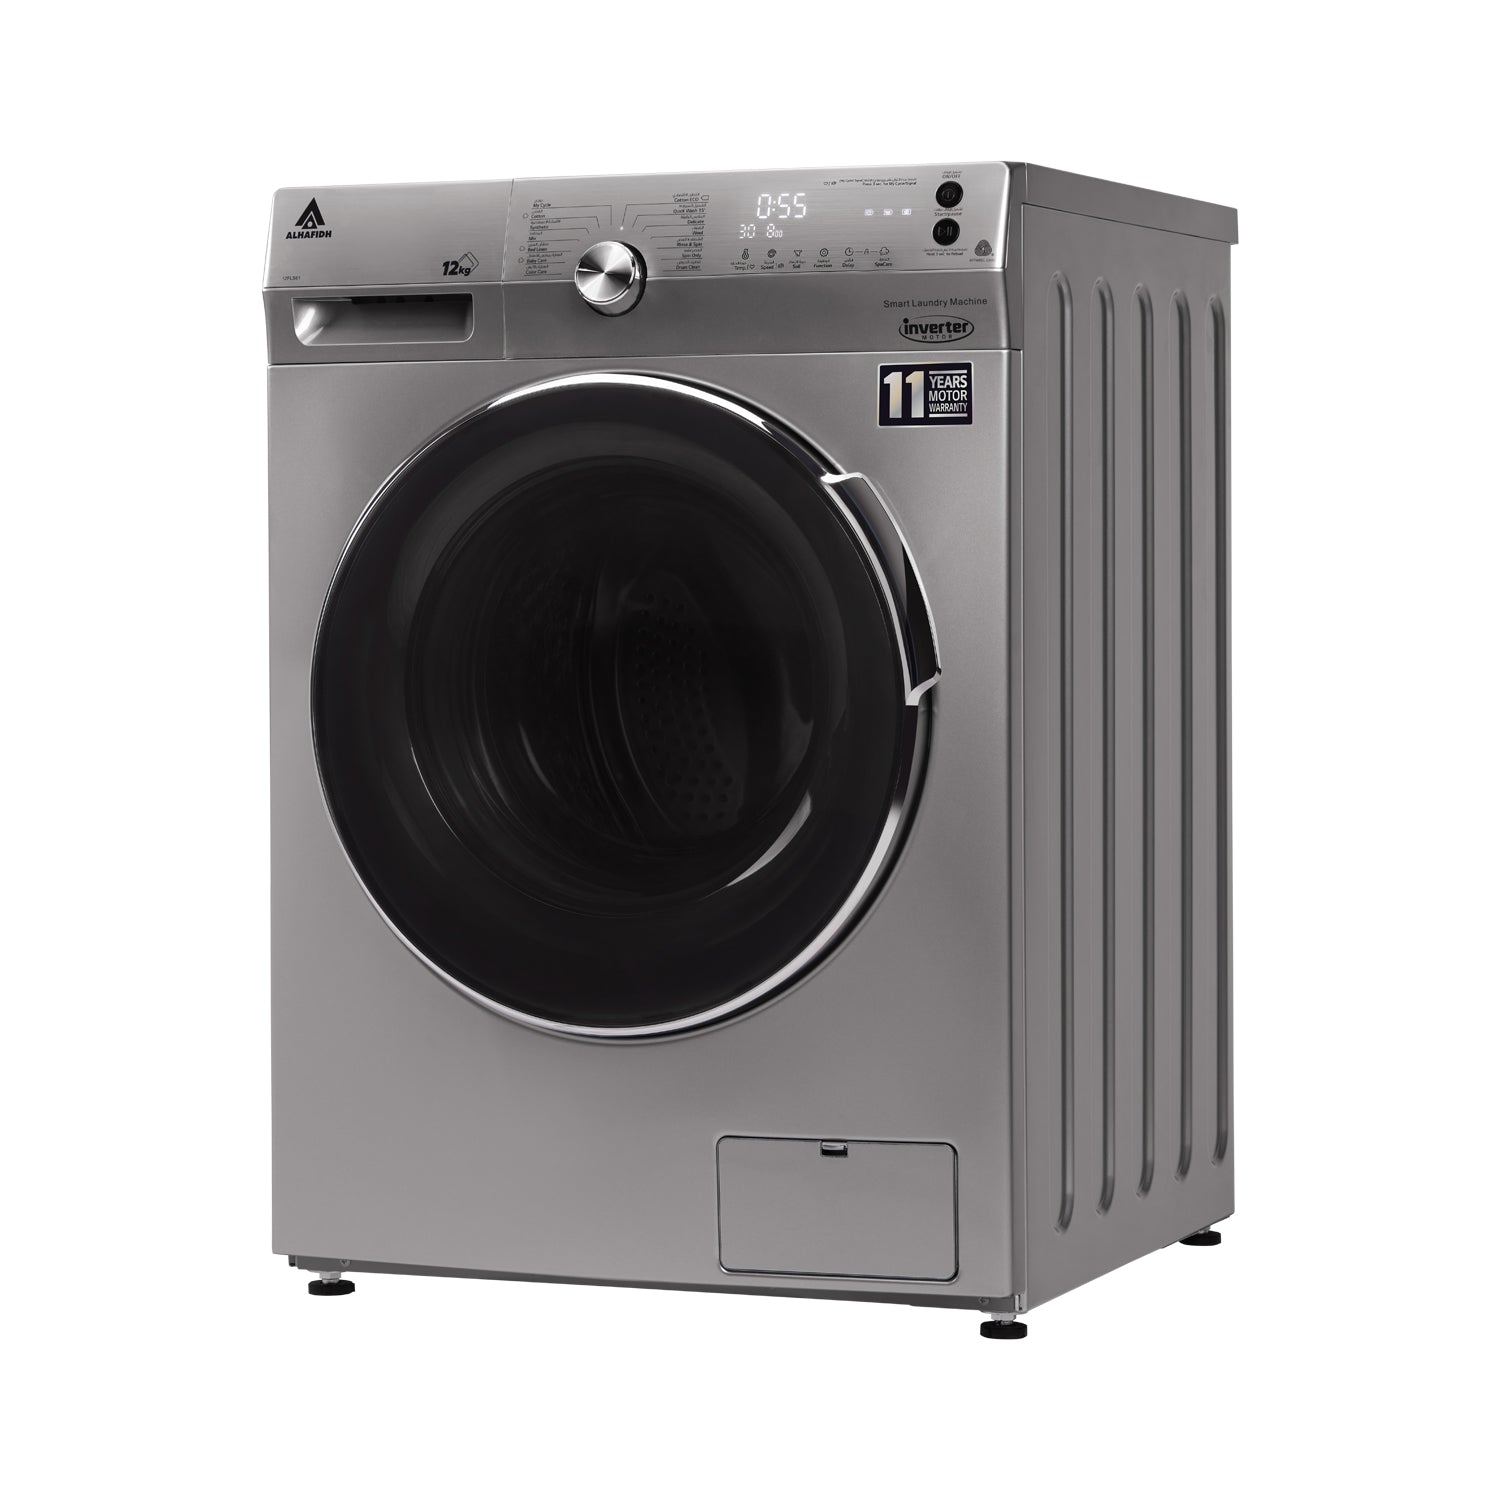 12KG Front Loading Washing Machine